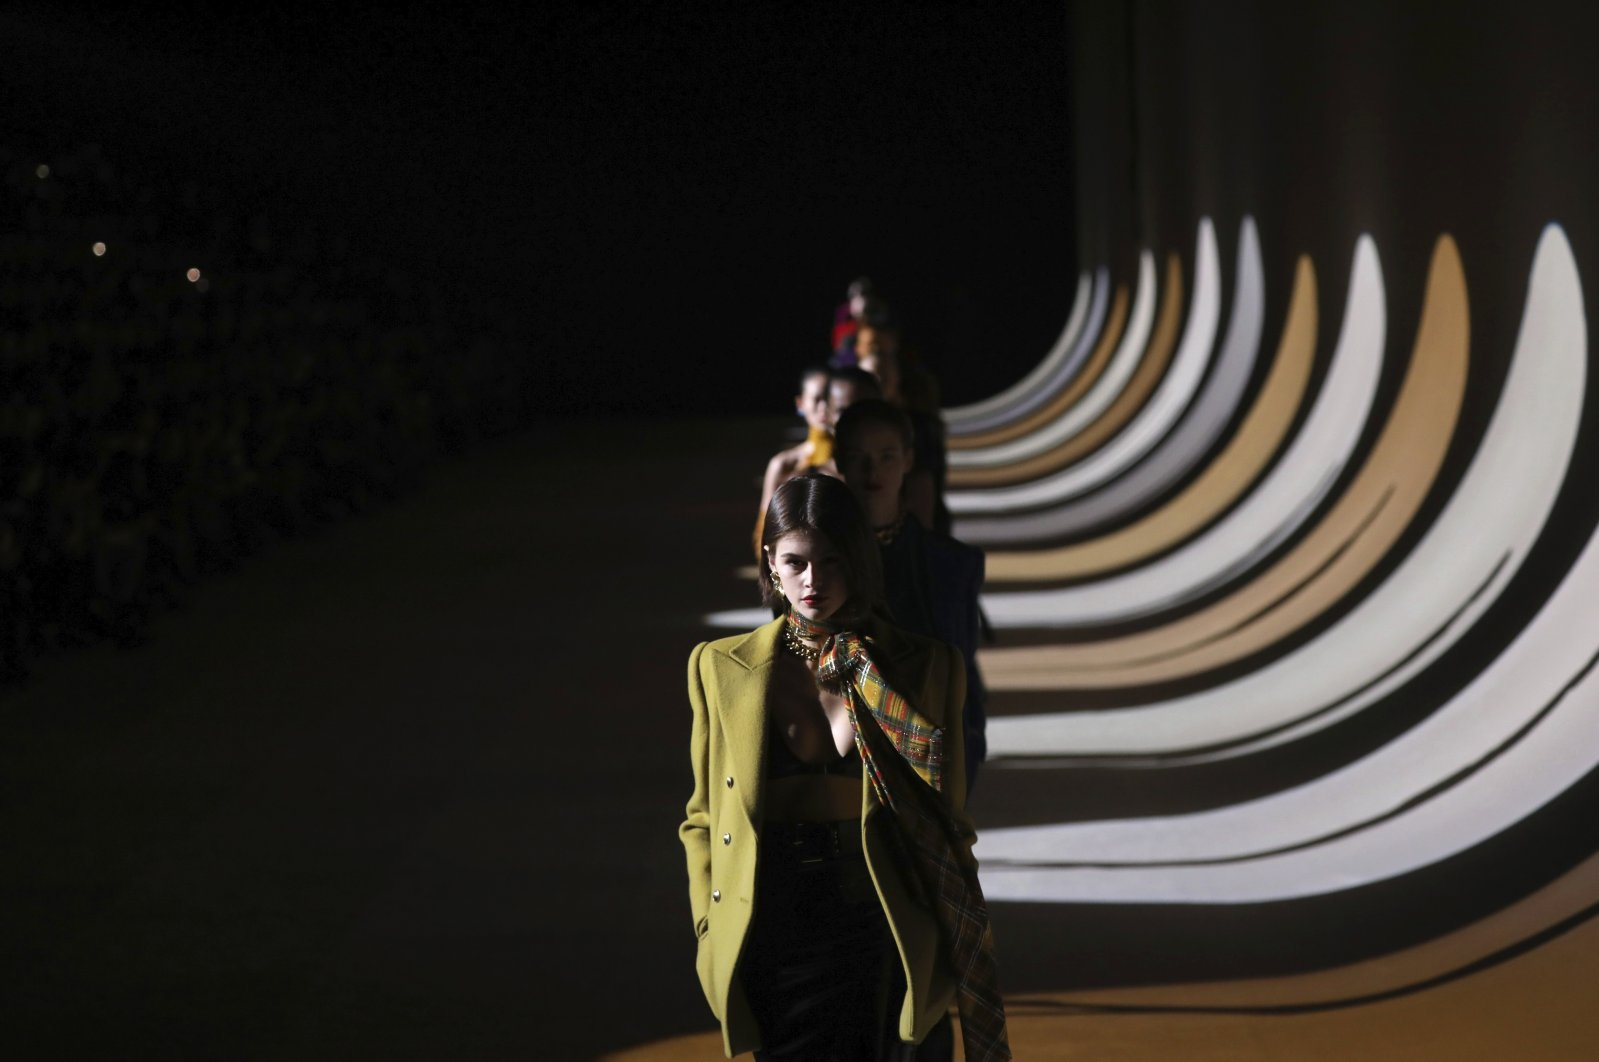 In this Feb. 25, 2020 file photo, model Kaia Gerber leads other models as they wear creations for the Saint Laurent fashion collection during Women's fashion week Fall/Winter 2020/21 presented in Paris. (AP Photo)